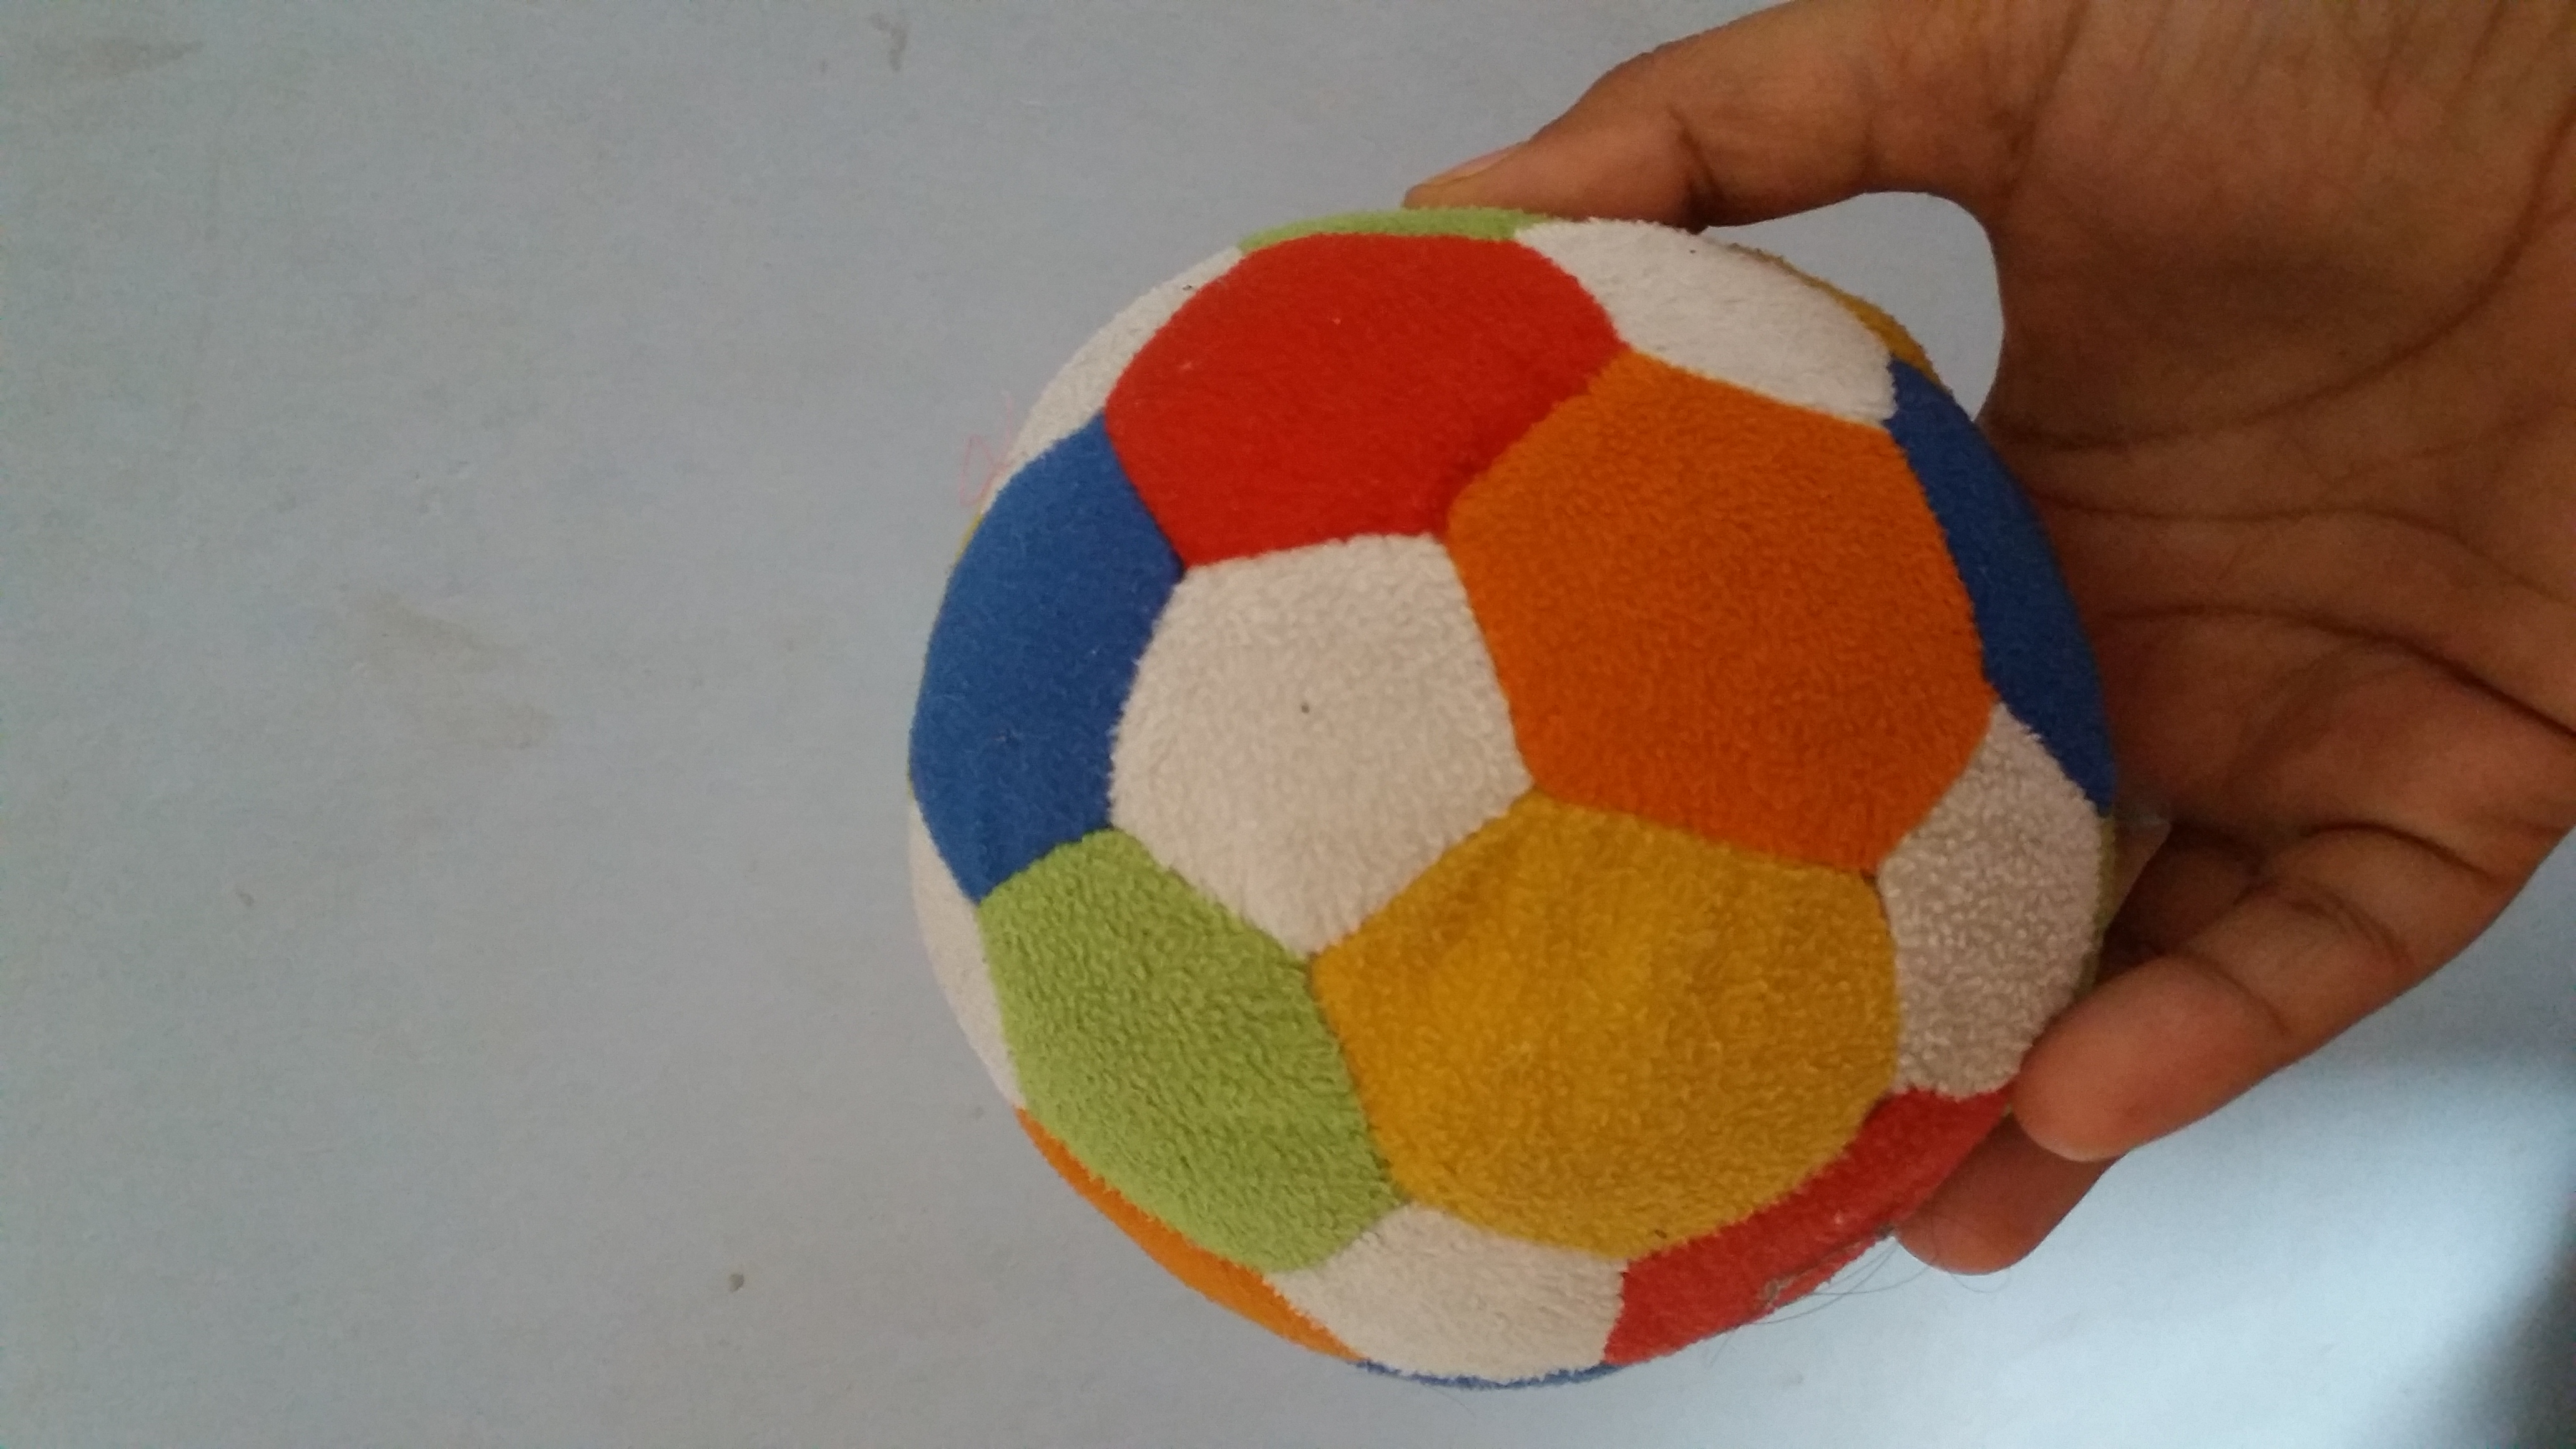 Funzoo Soft Toy Ball-Soft ball that lasts longer than expected-By vandana_ajith